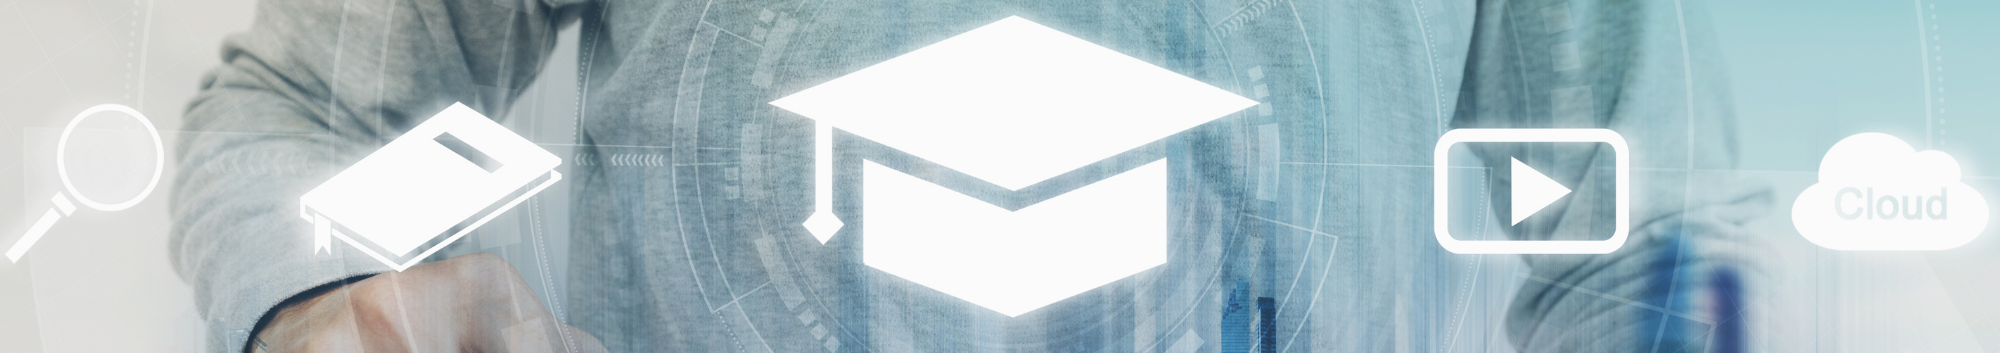 education collaboration header